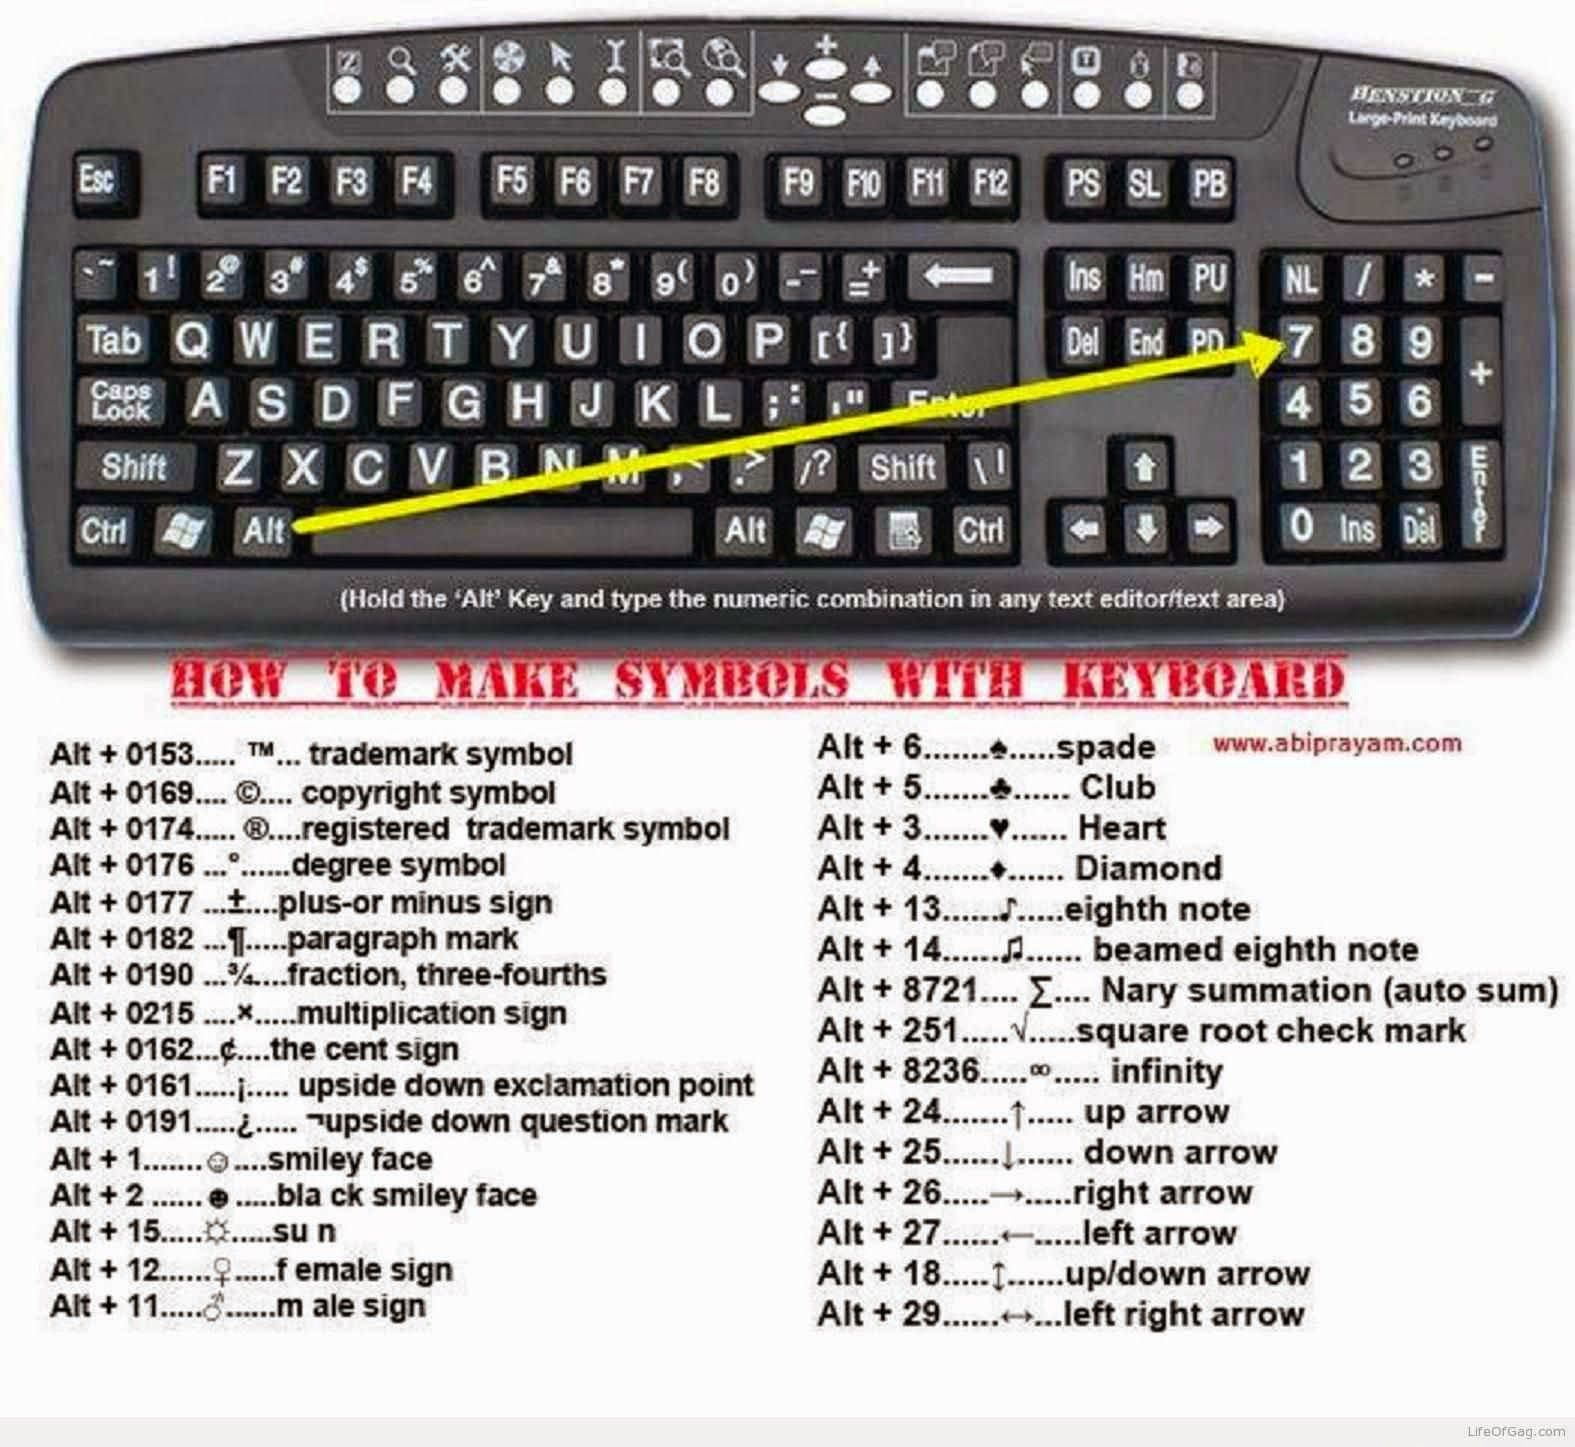 How to make symbols with keyboard electrical engineering world how to make symbols with keyboard electrical engineering world biocorpaavc